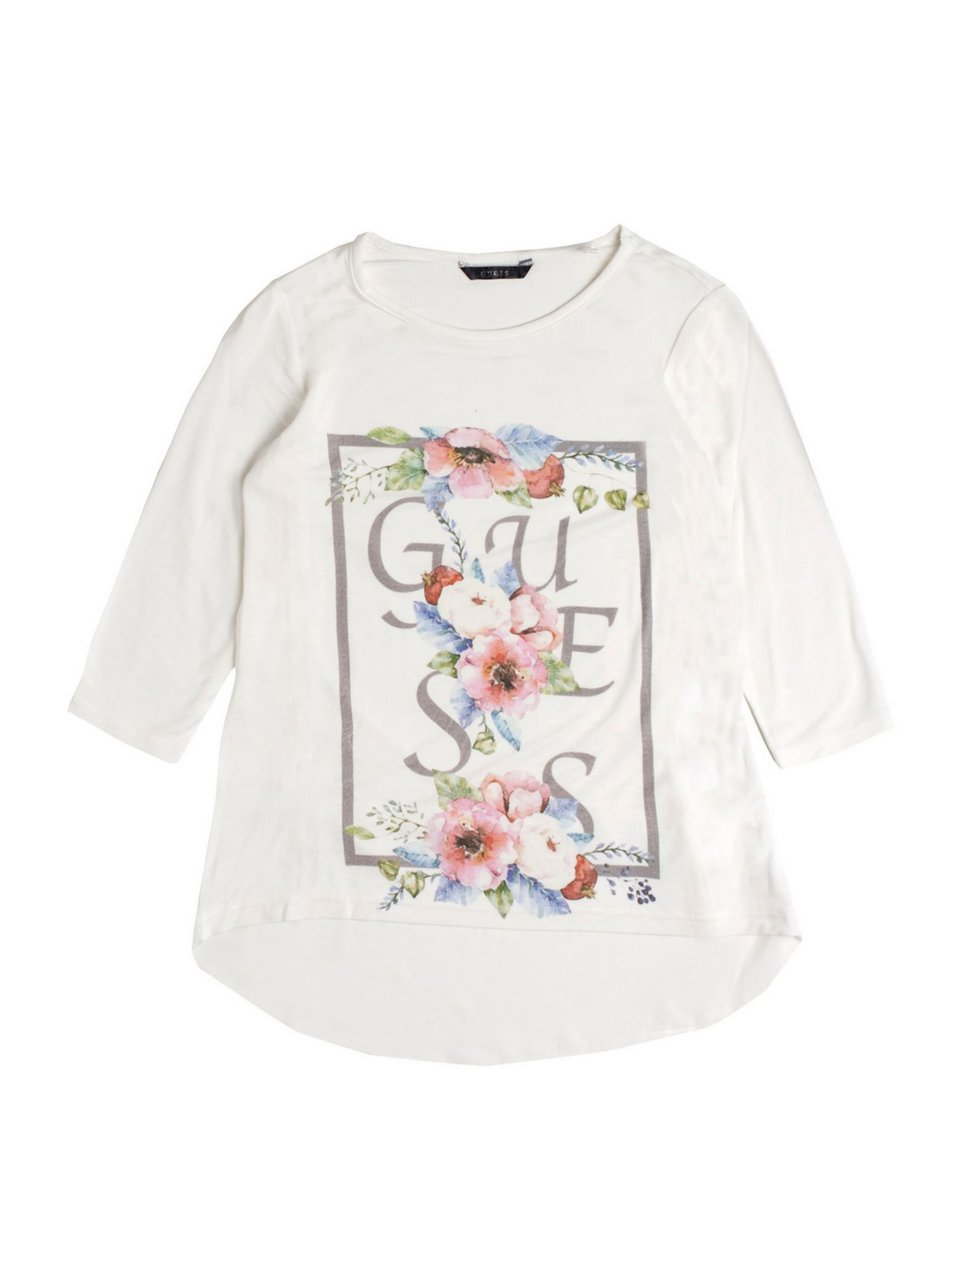 GUESS Floral Graphic Tee (7-16)